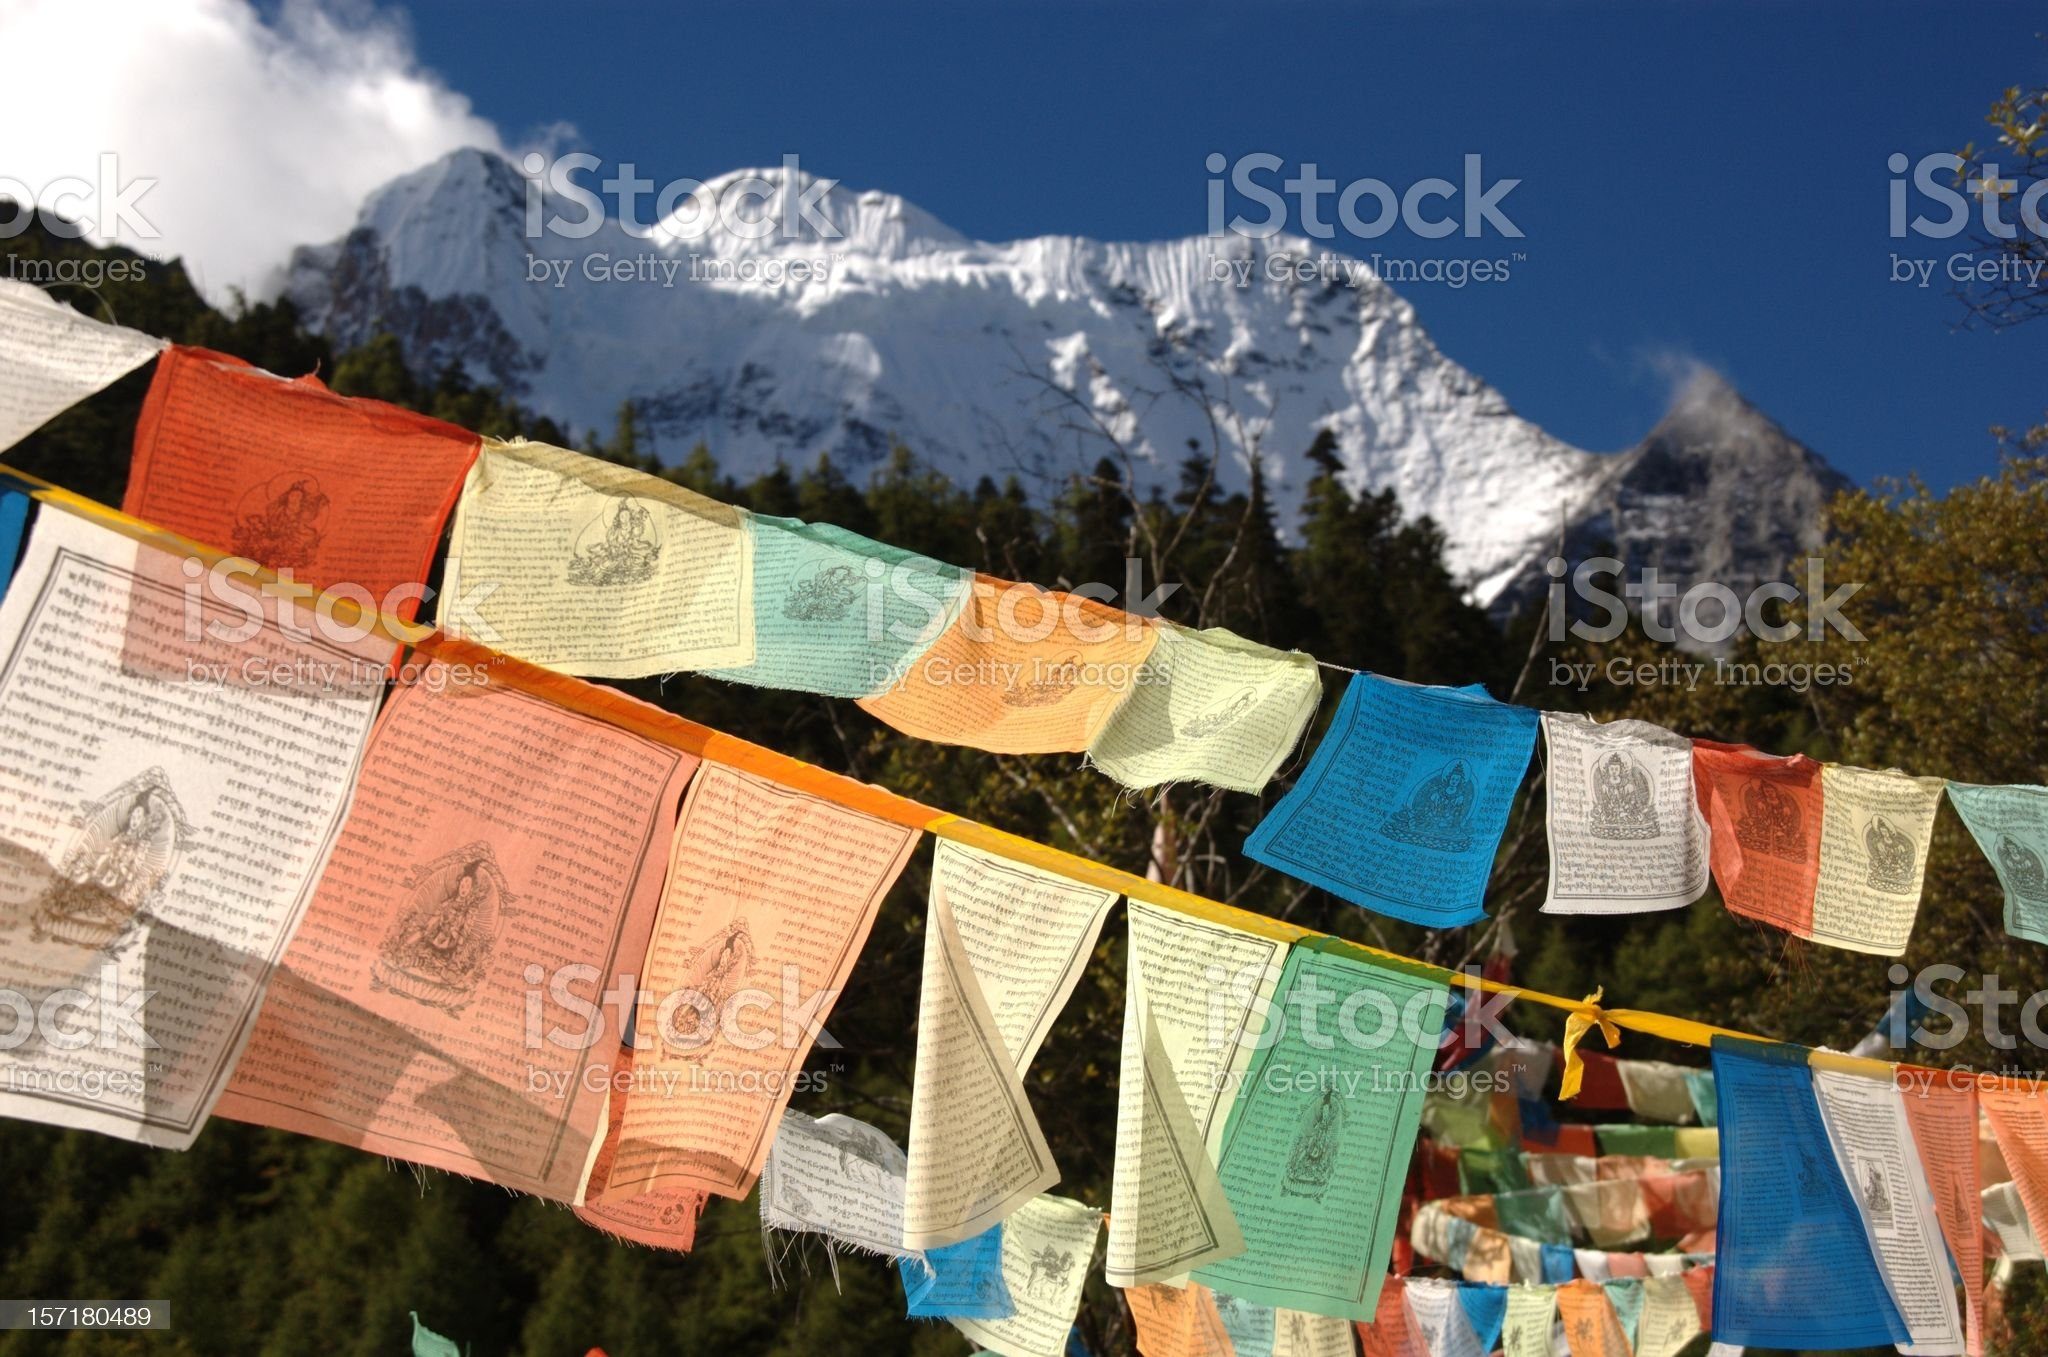 Kham Tibet : Lung-ta @ Yading Nature Park (SiChuan, China) royalty-free stock photo